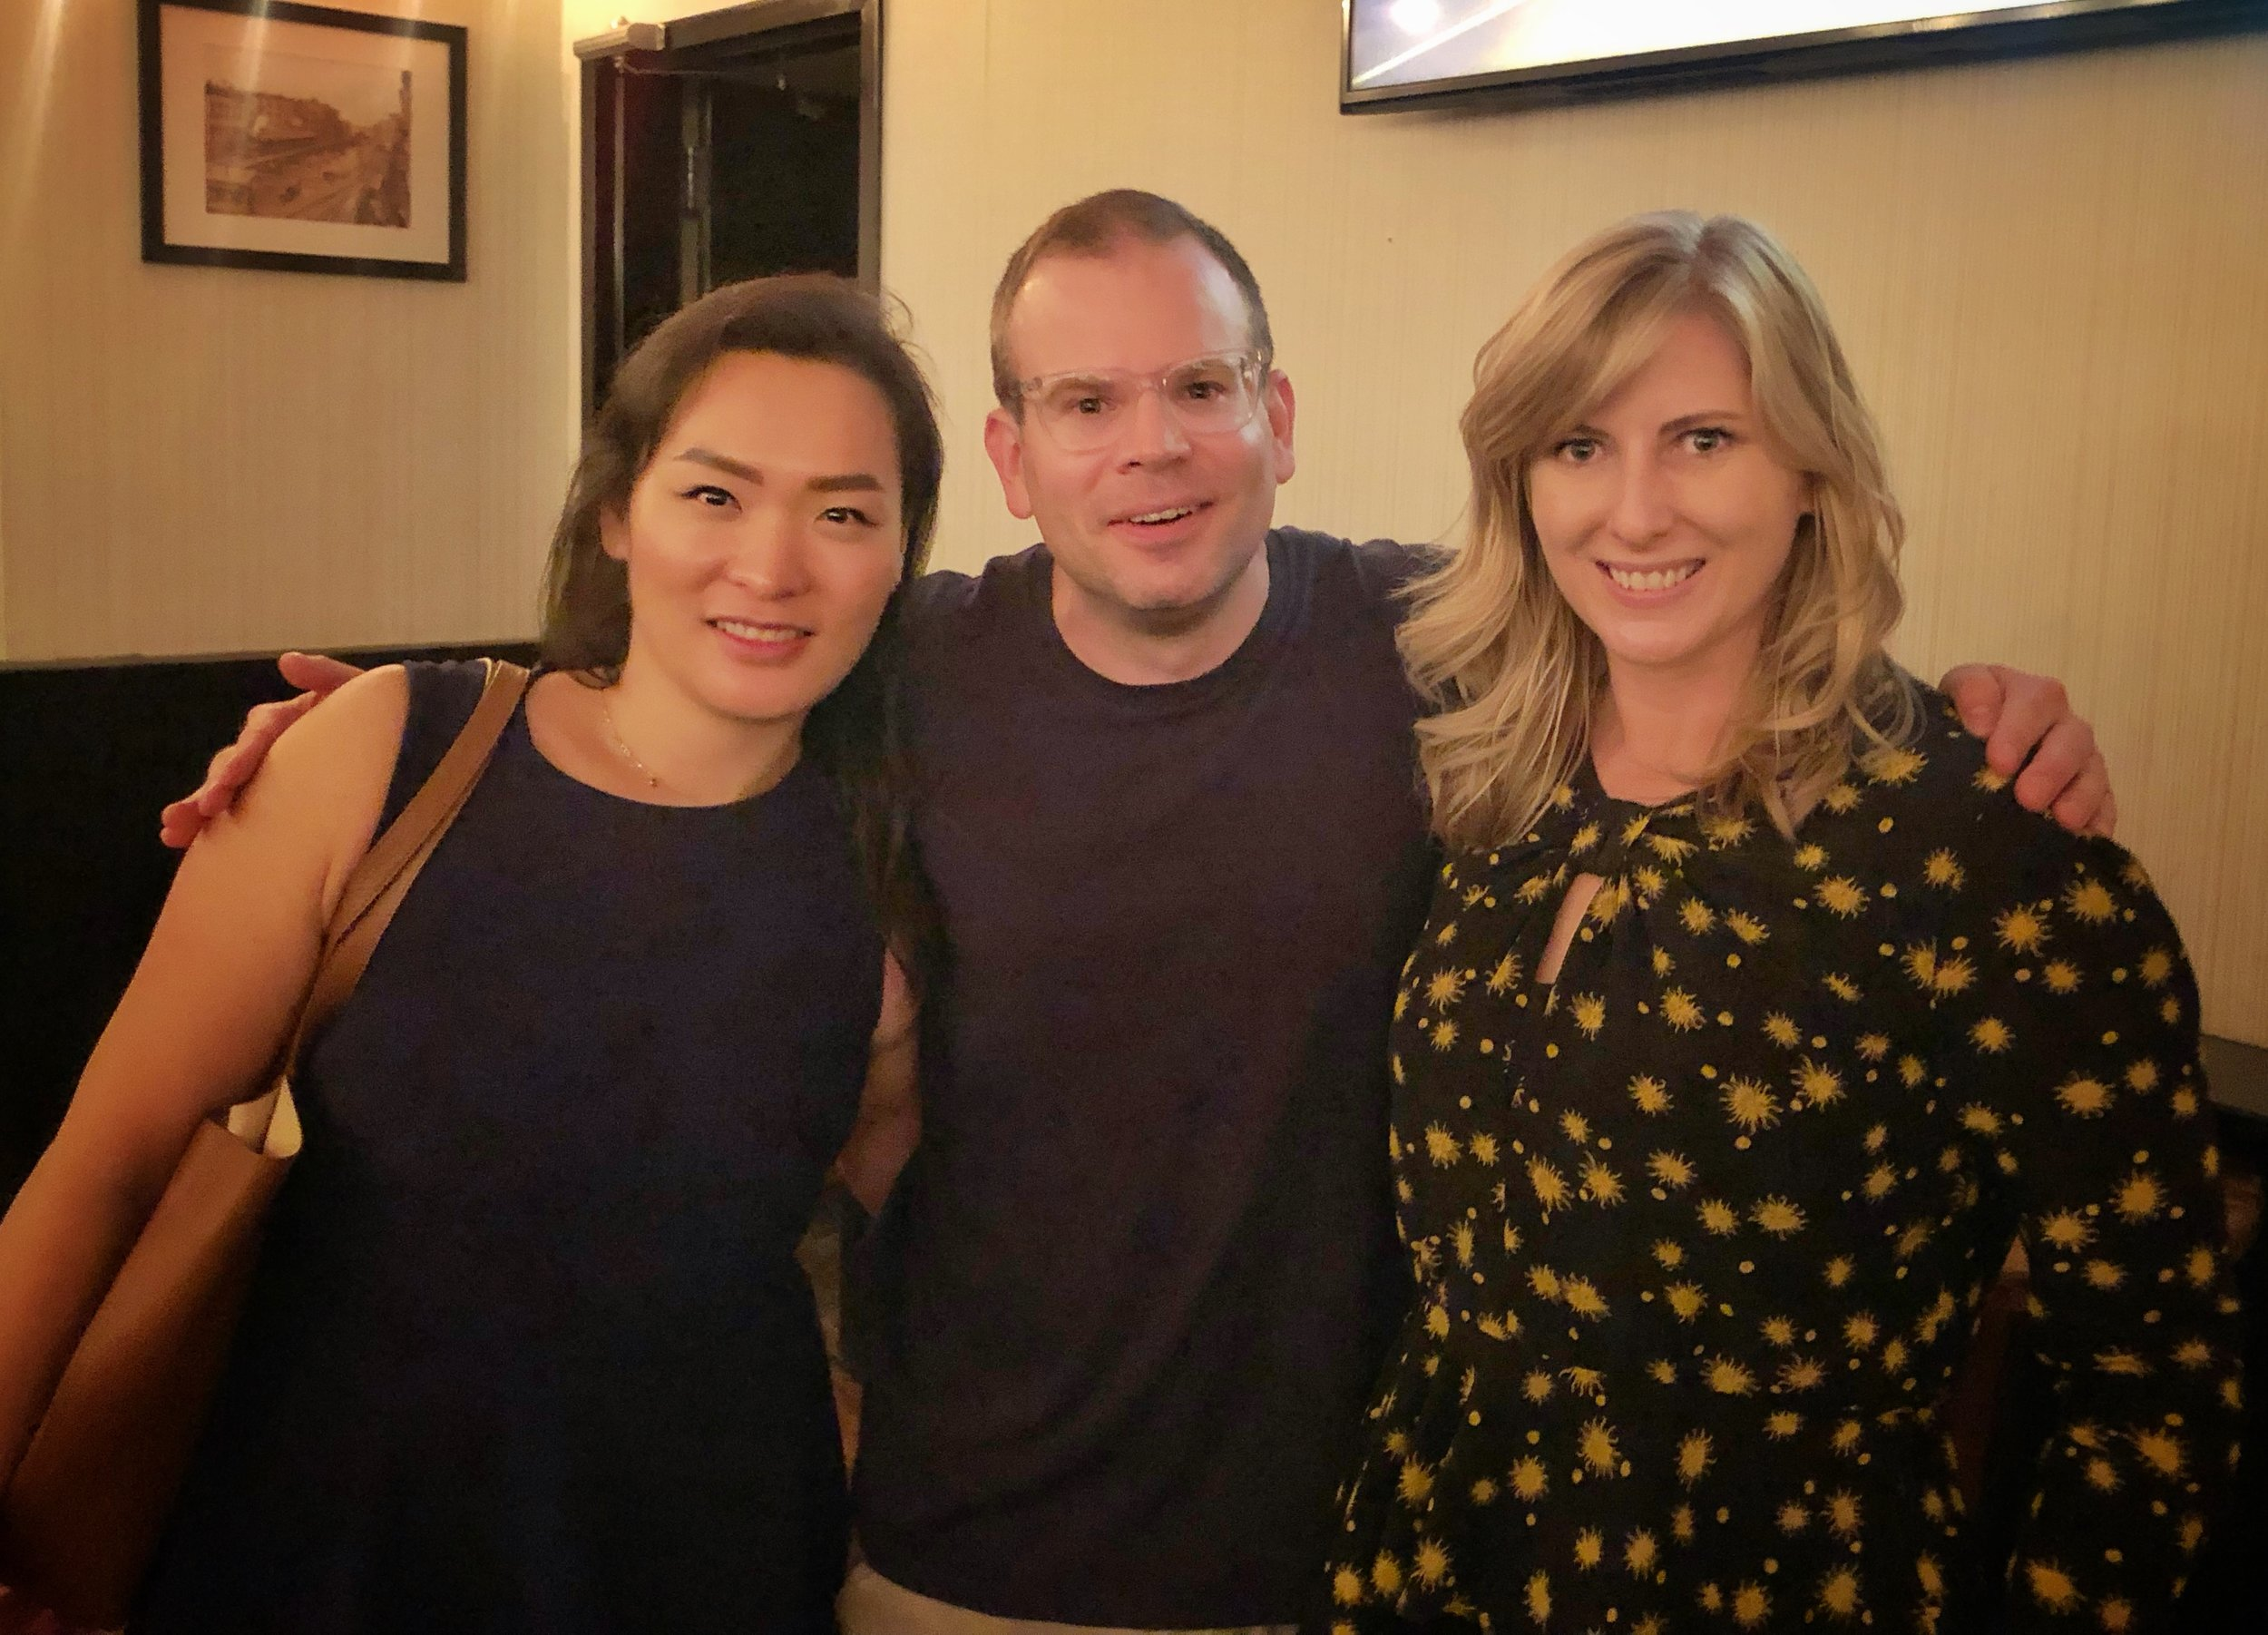 Stella Kim, Adam Wade, and Erin Essex